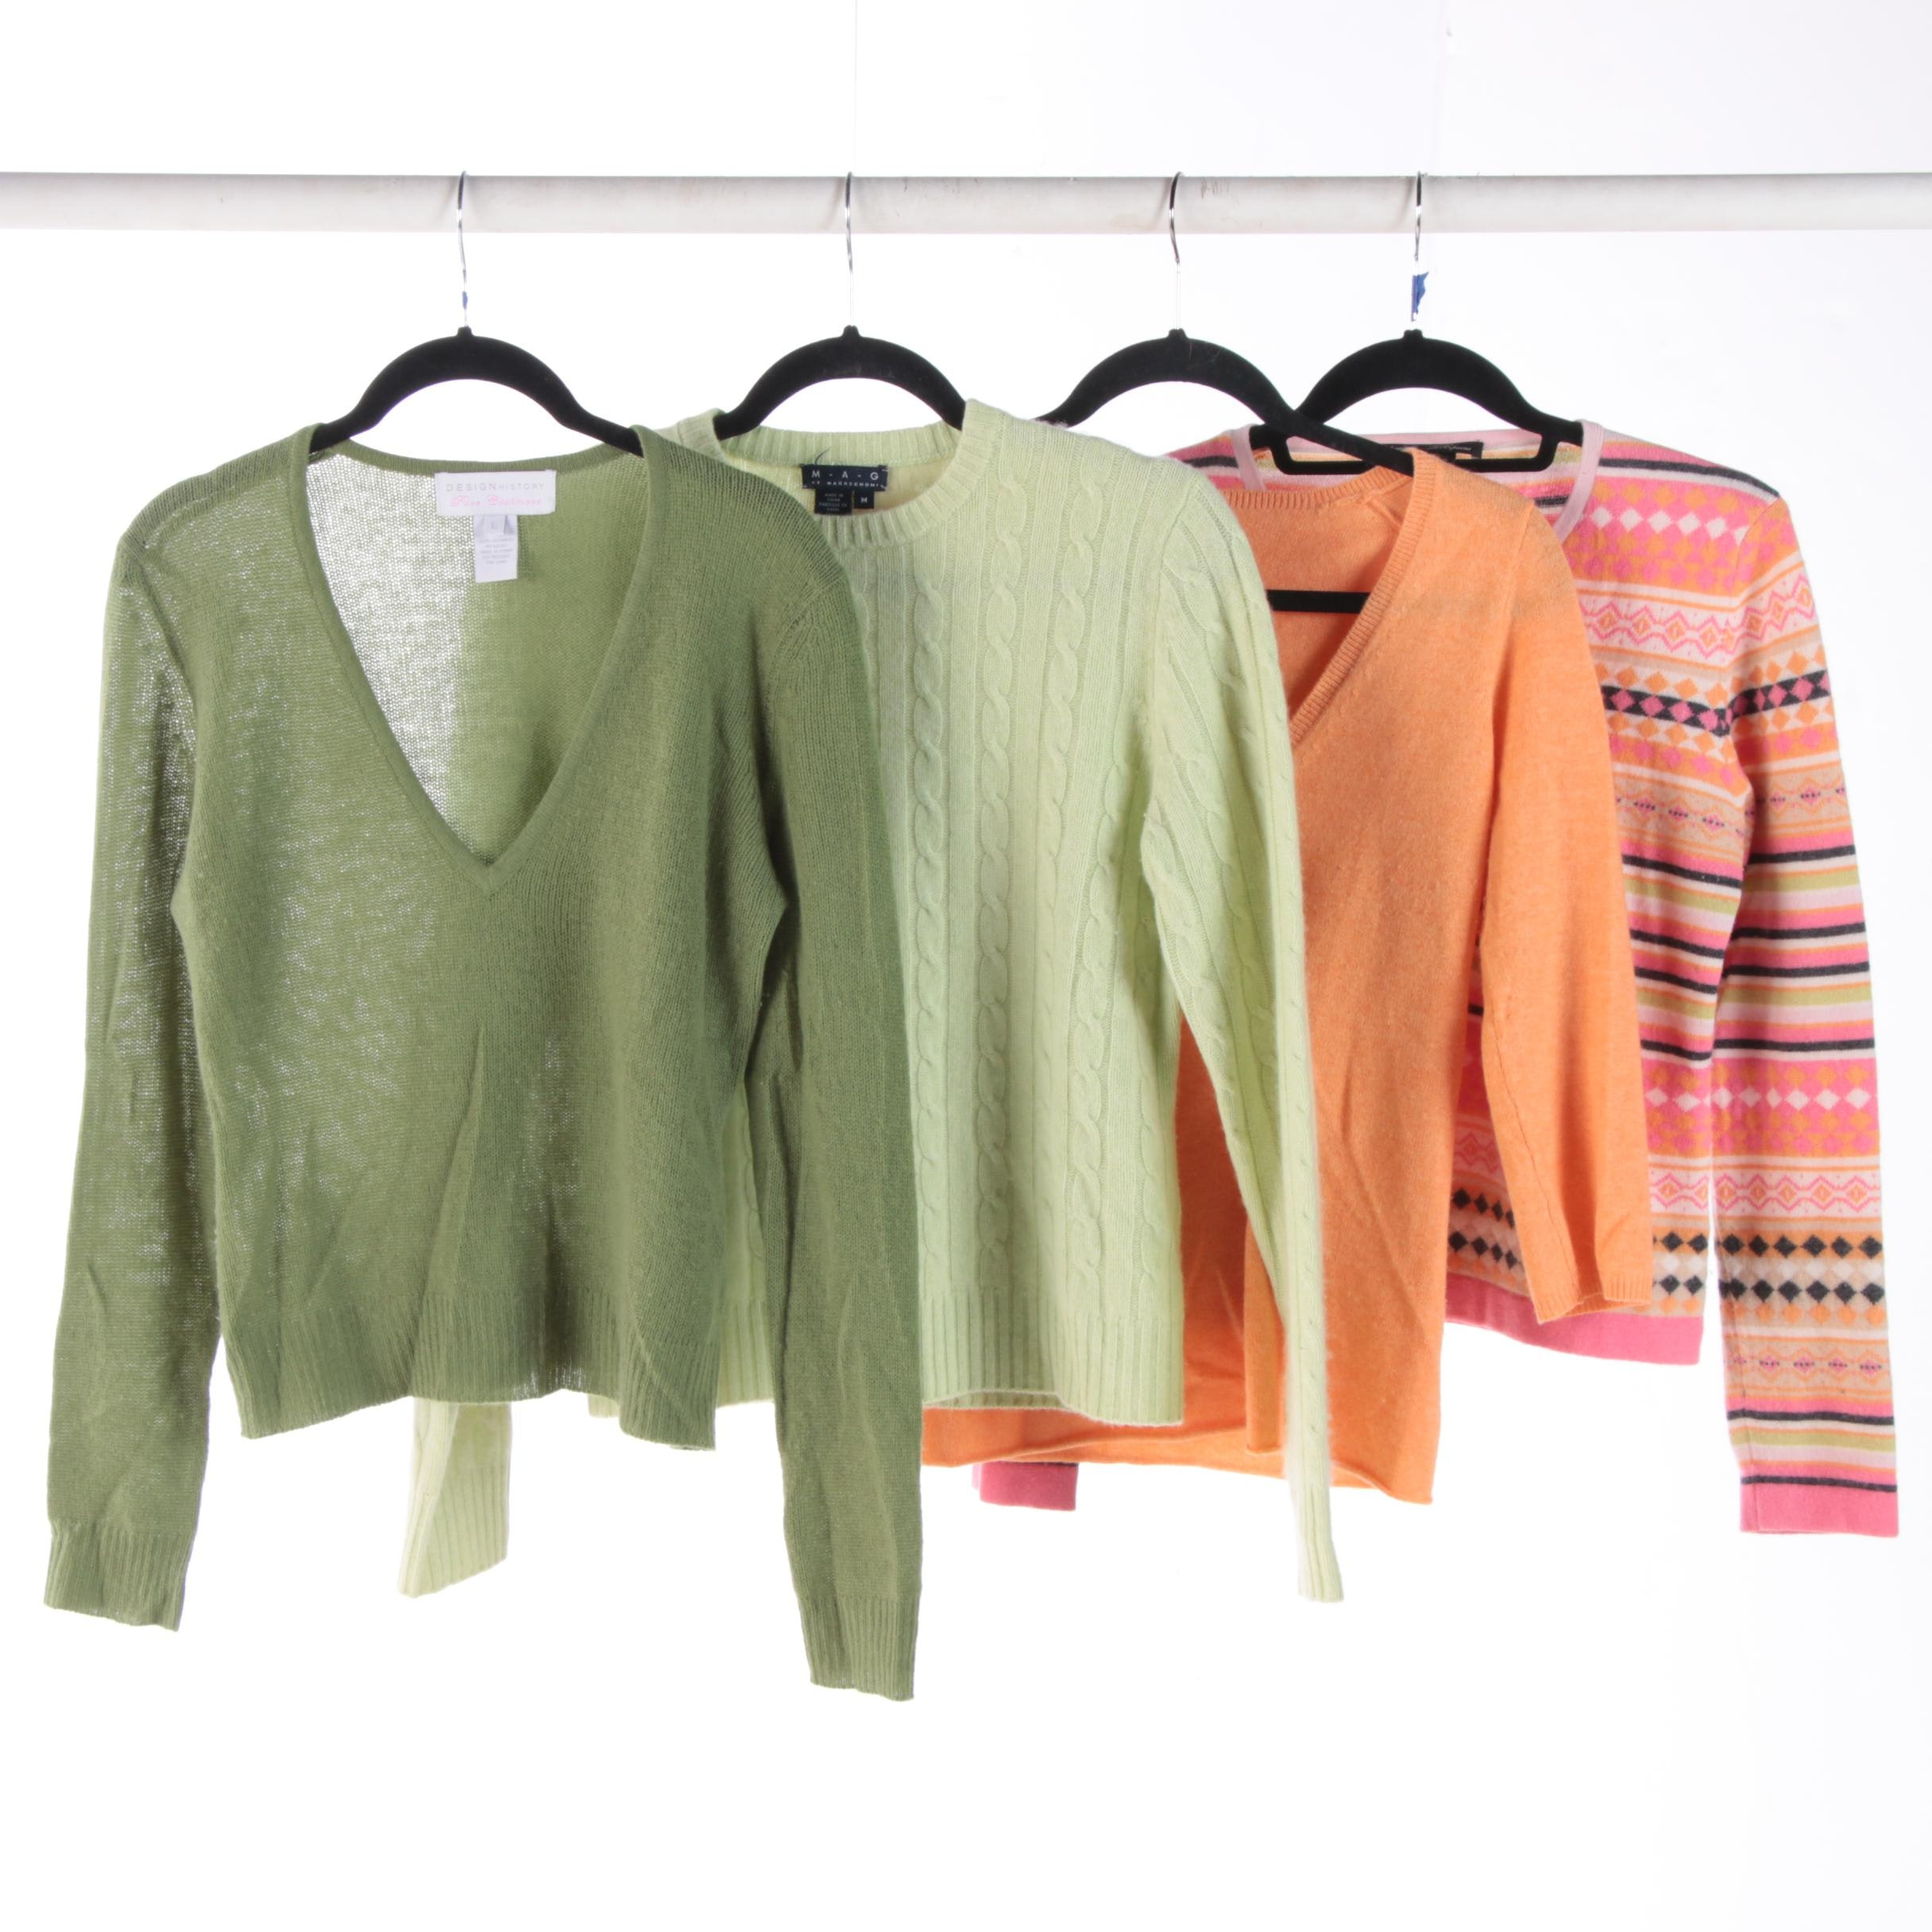 Womens Cashmere Sweaters Including Les Copains J Crew And Mag By